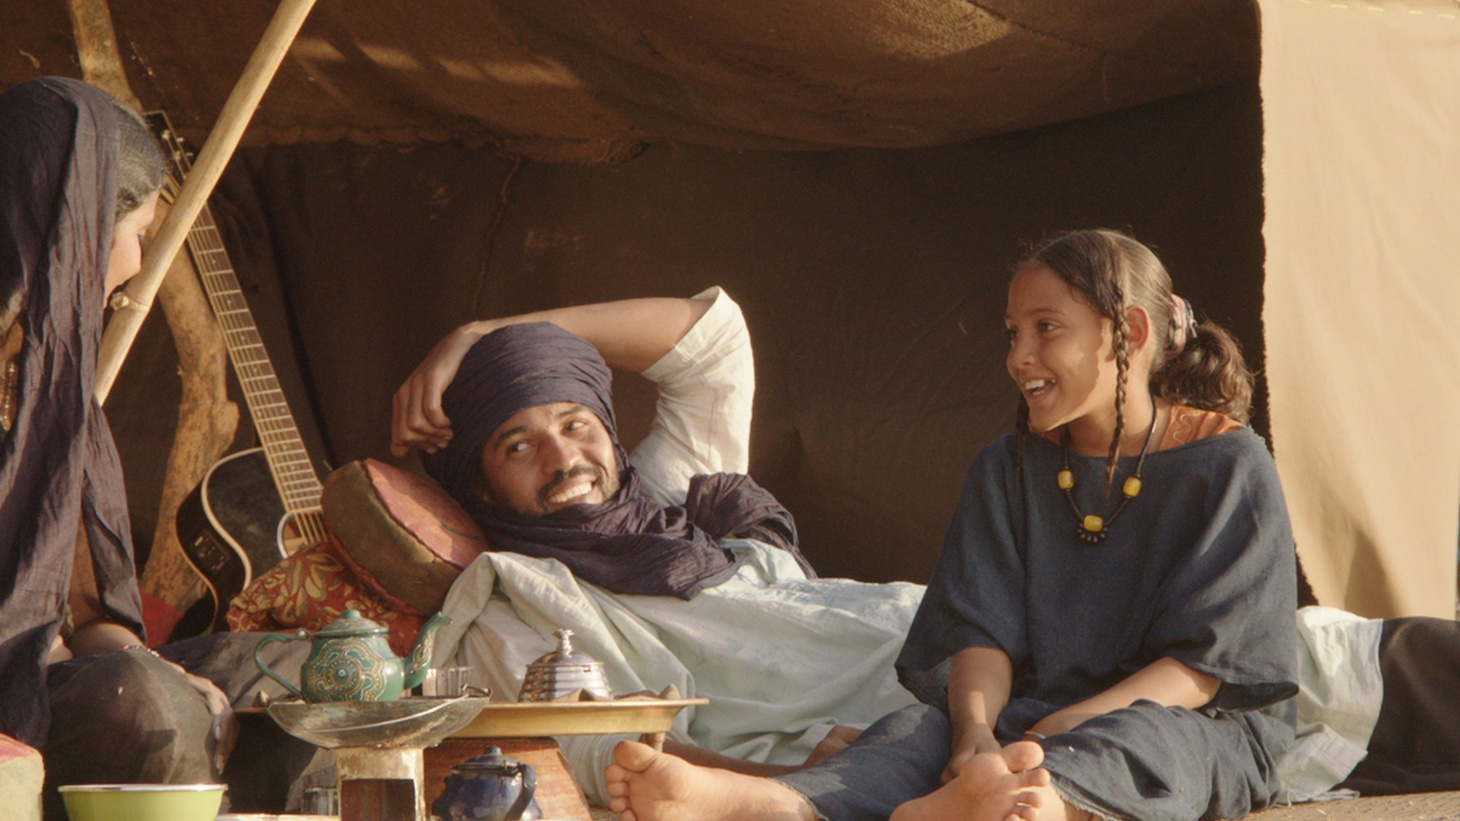 Timbuktu takes a deadly aim at Islamic fundamentalism by playing its own game of deft ridicule.